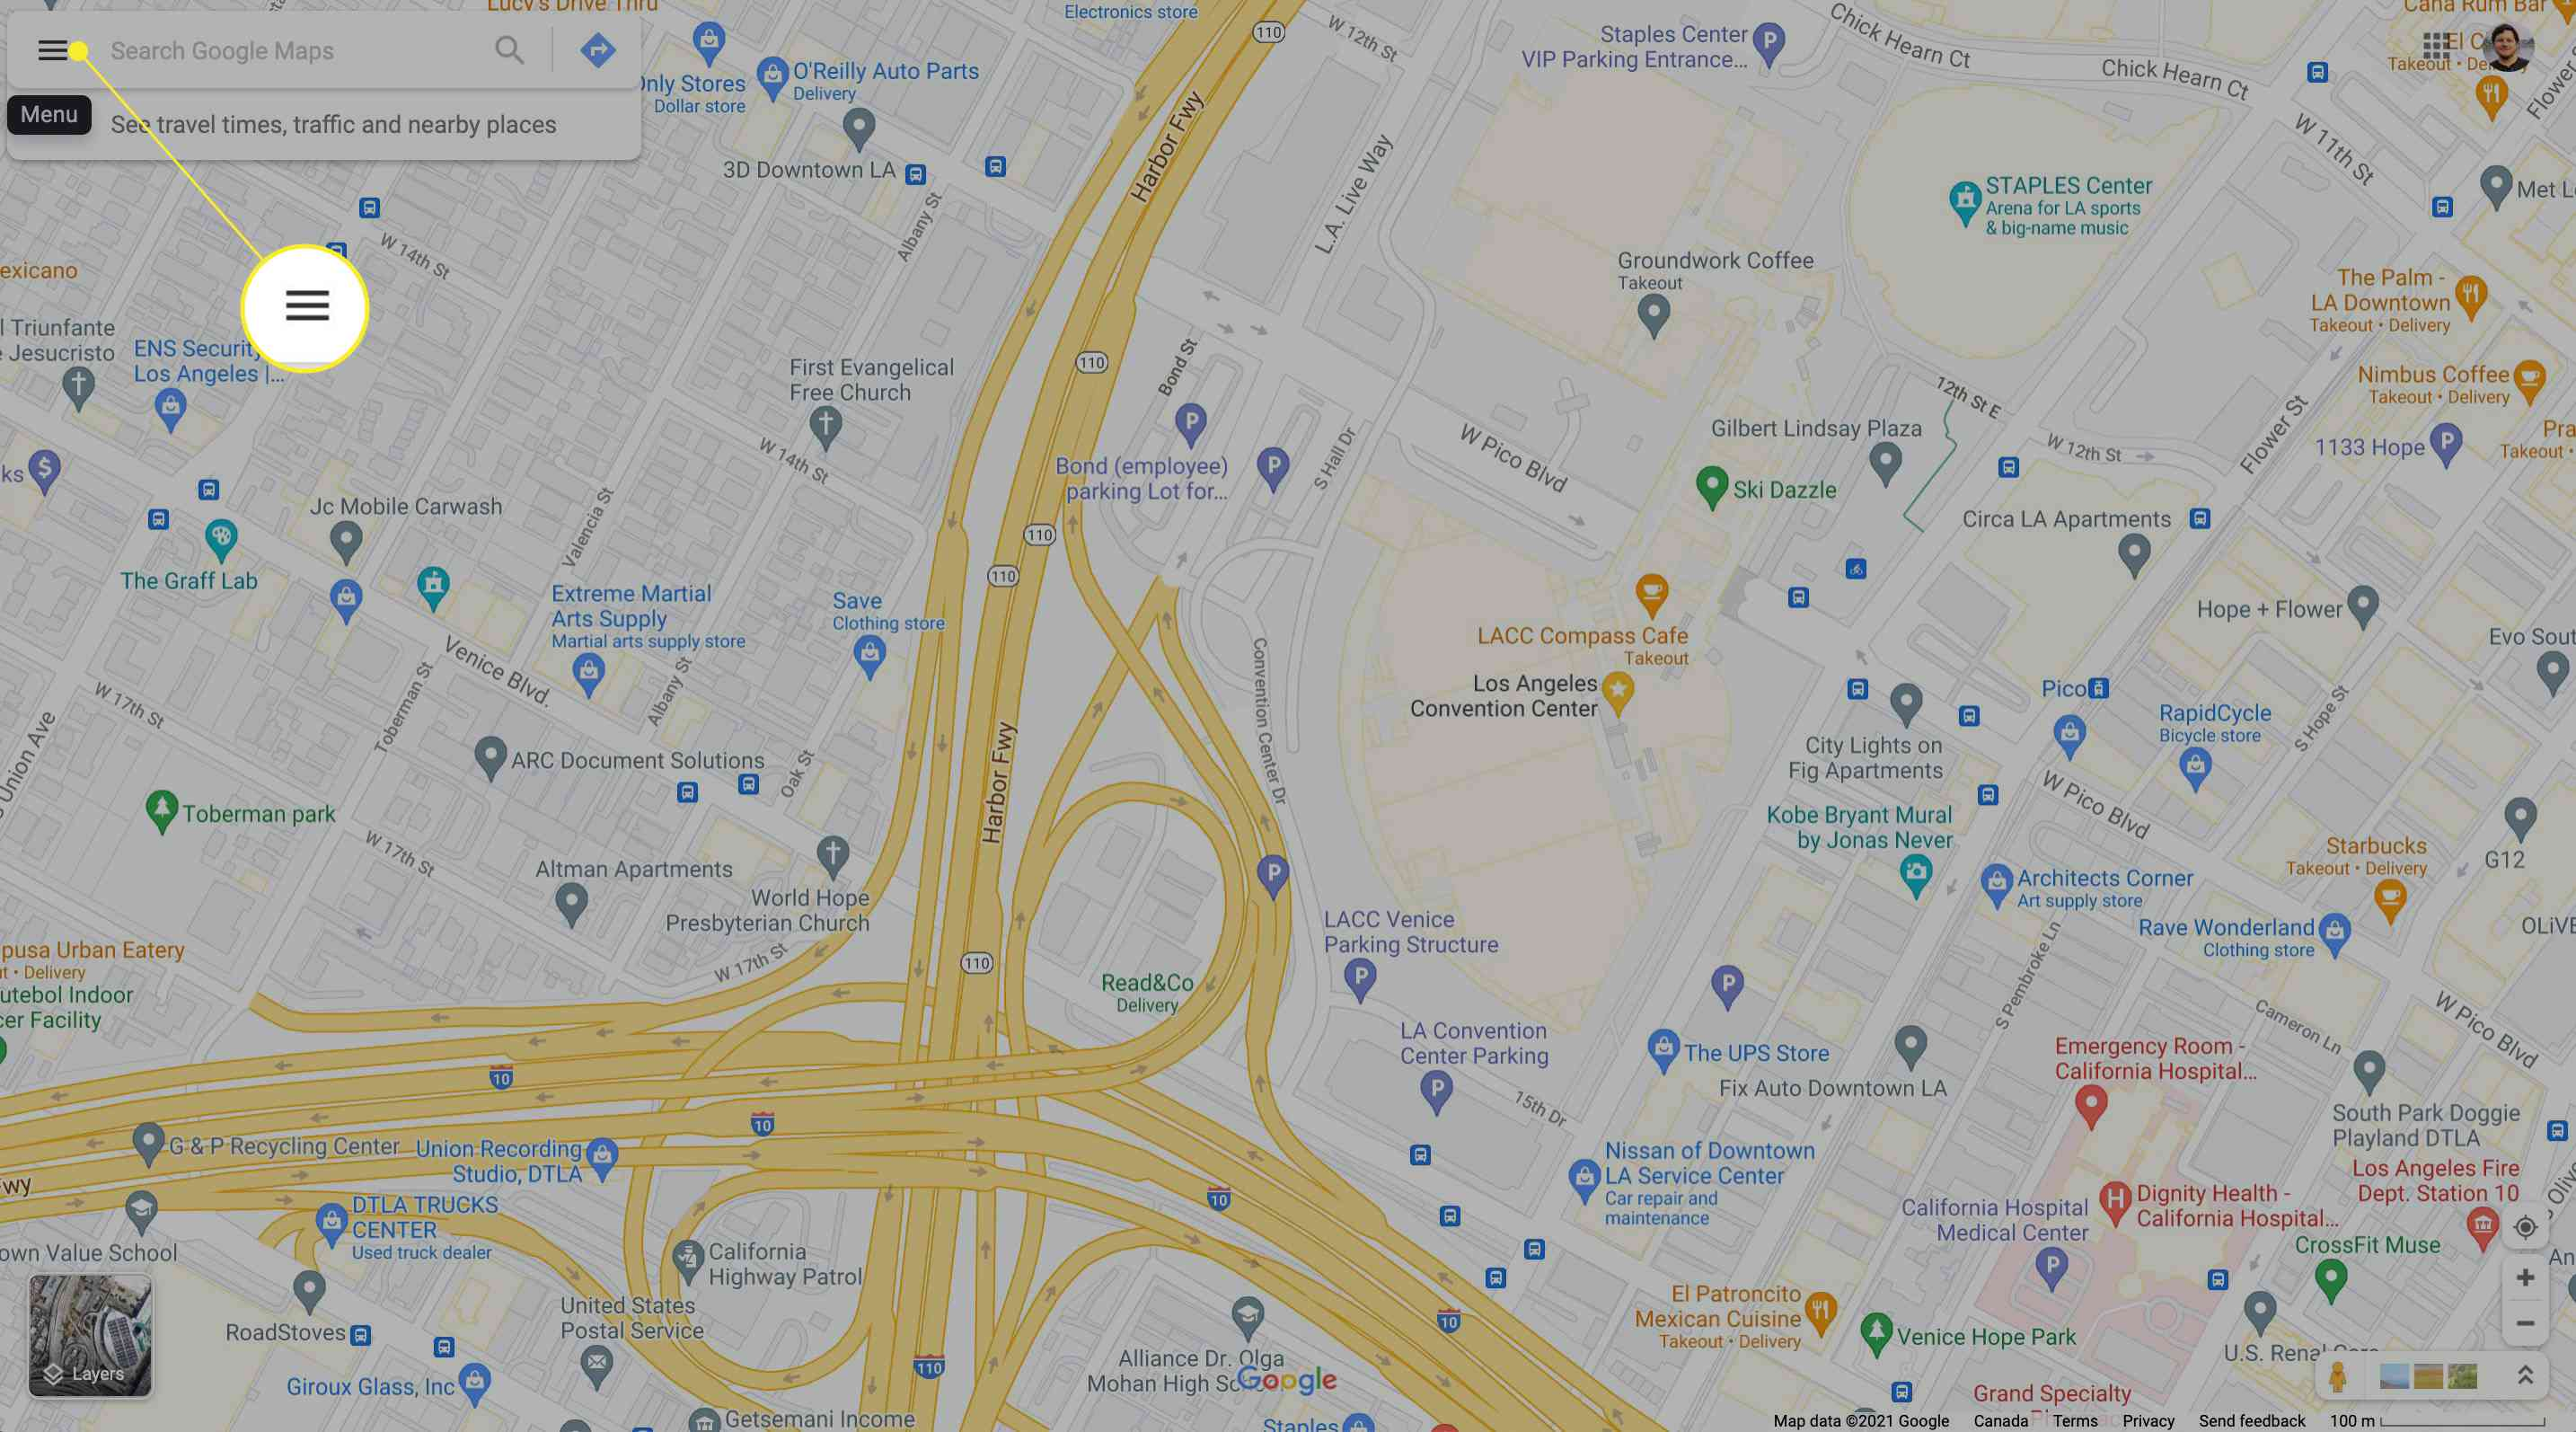 Accessing Google Maps Menu on desktop with Menu icon highlighted